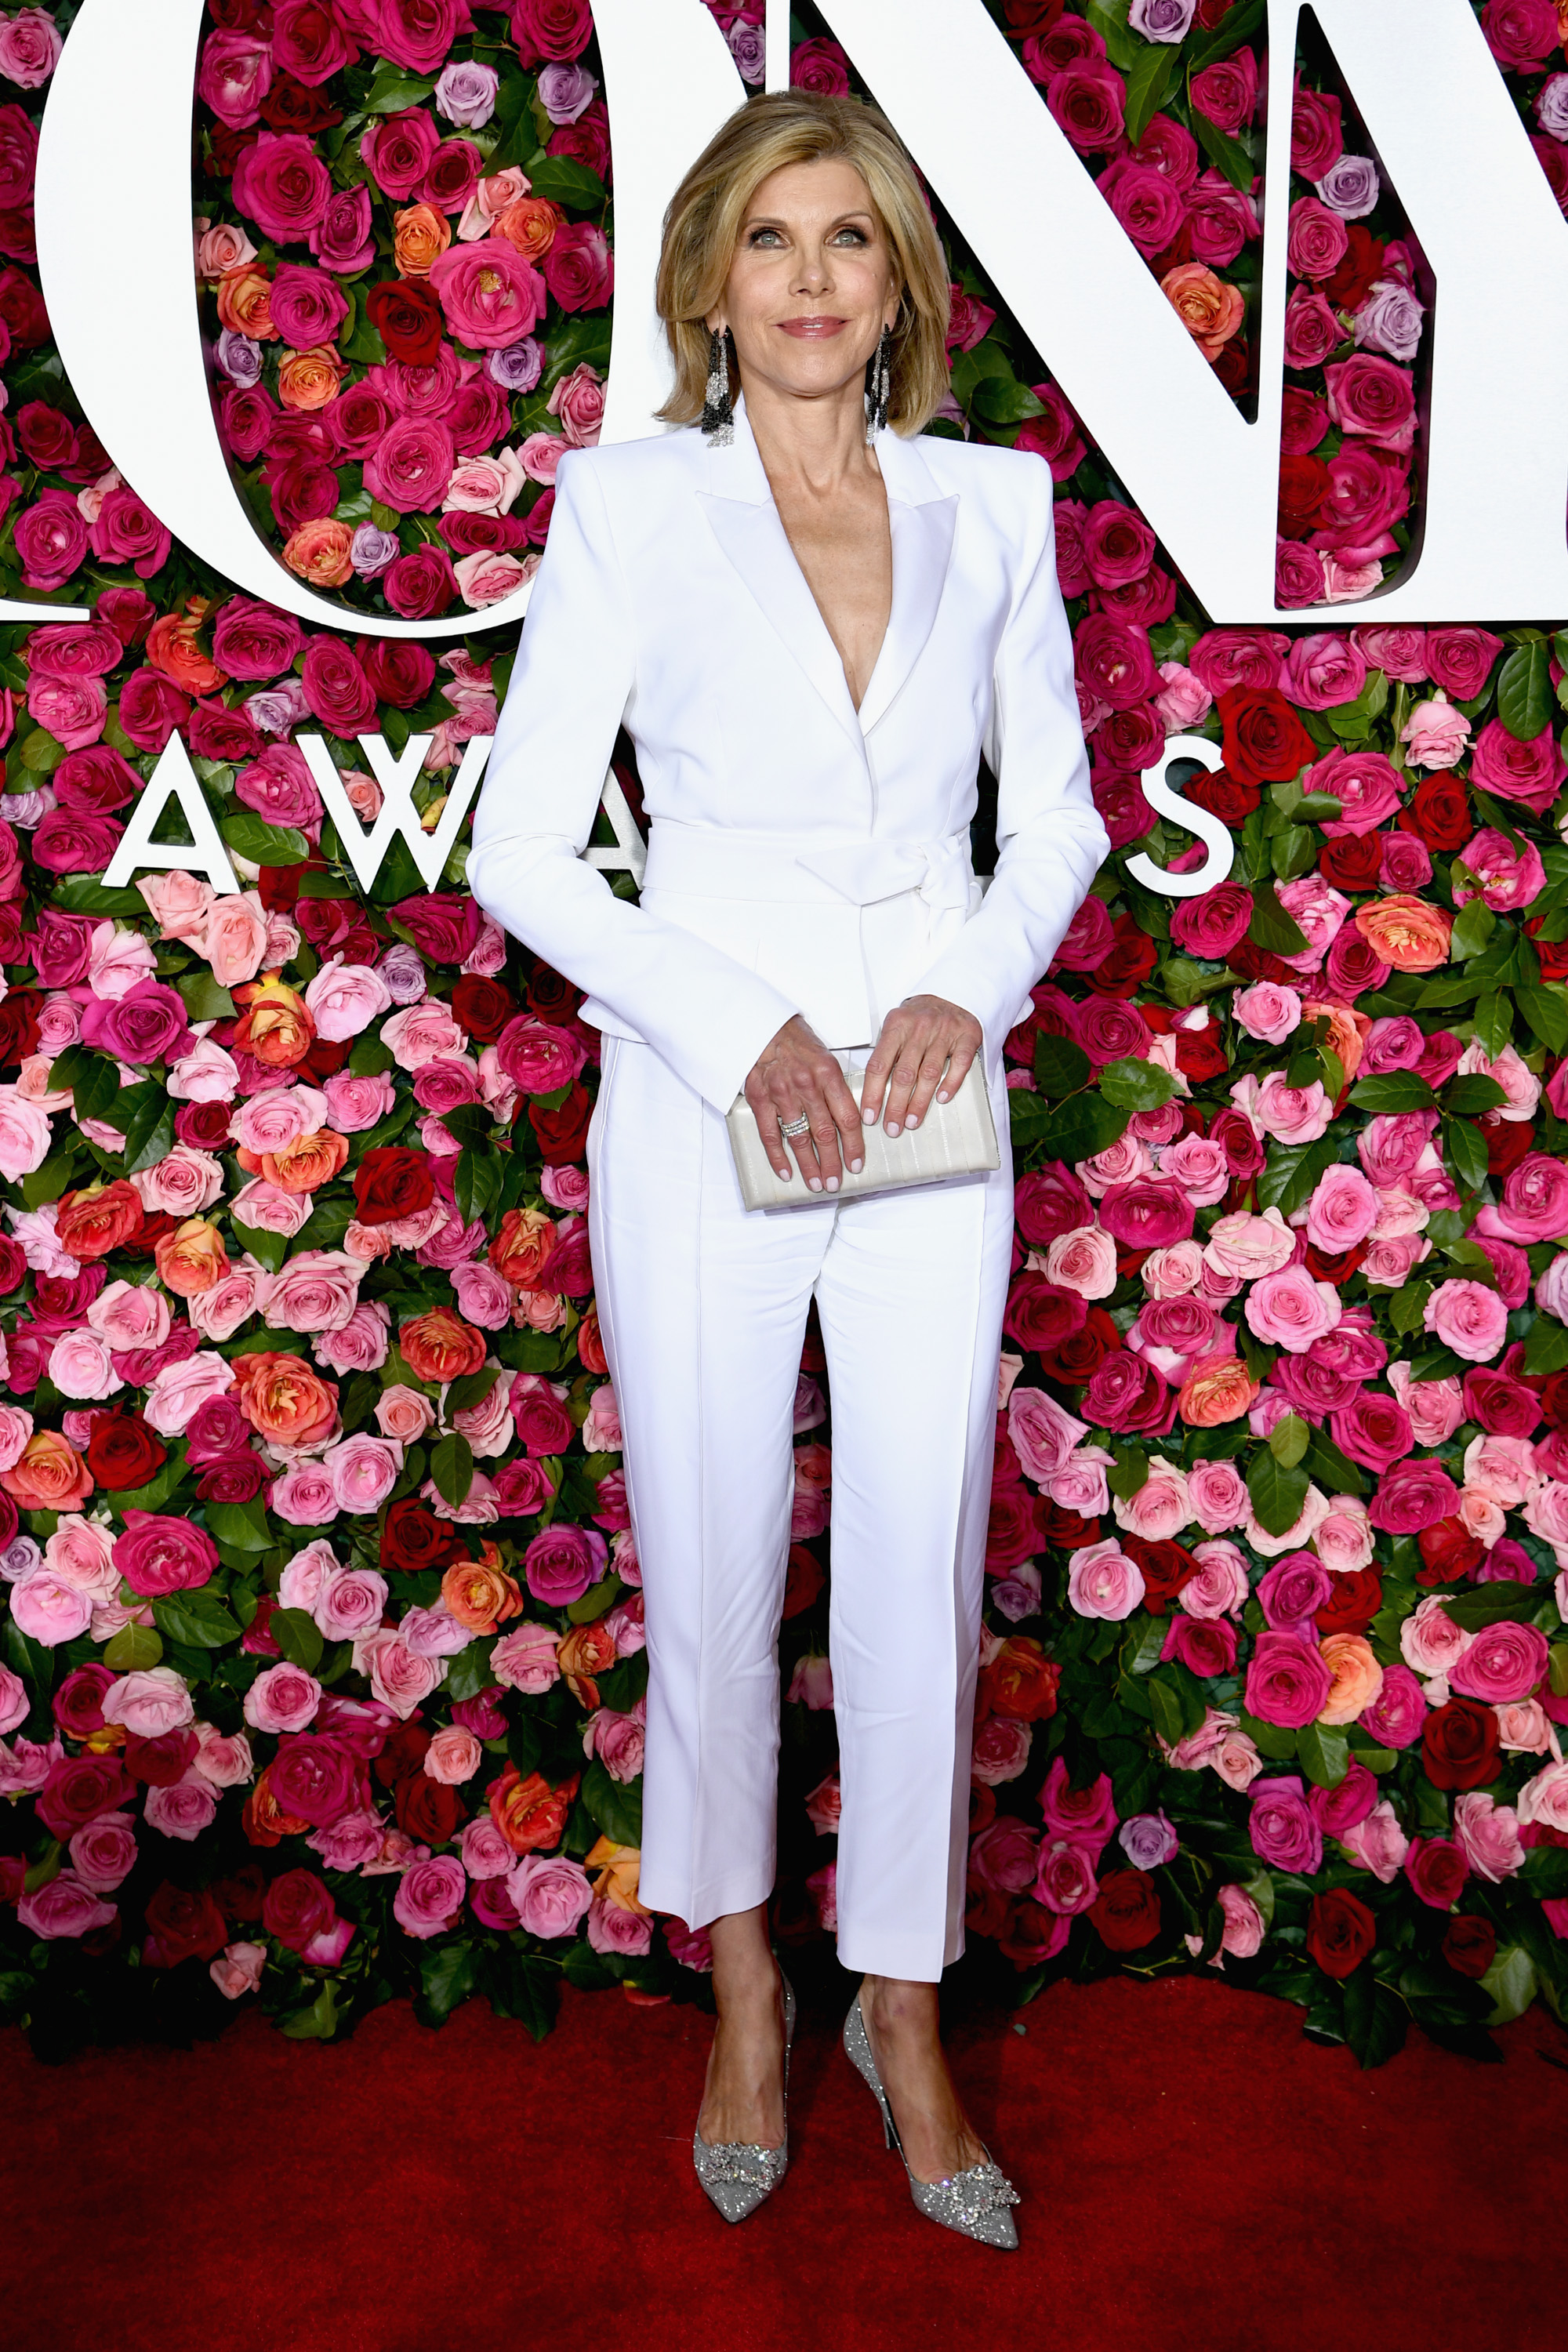 <p>The A-list have come out to celebrate Broadway's biggest night at the 72nd annual Tony Award's at New York's Radio City Music Hall.</p> <p><em>The Good Wife</em> star Christine Baranski gave her younger counterparts a run for their money in a chic white pant suit by Alexandre Vauthier, offering a tailored, sleek and structured look. </p> <p>While comedian Tina Fey and actress Kerry Washington brought the sparkle, both dazzling in silver. Washington wore a silver Versace pantsuit with Lorraine Schwartz jewels, while Fey shone in a Thom Browne gown with feather detailing.</p> <p>Click through to take a look at the most talked about looks of the evening.</p>